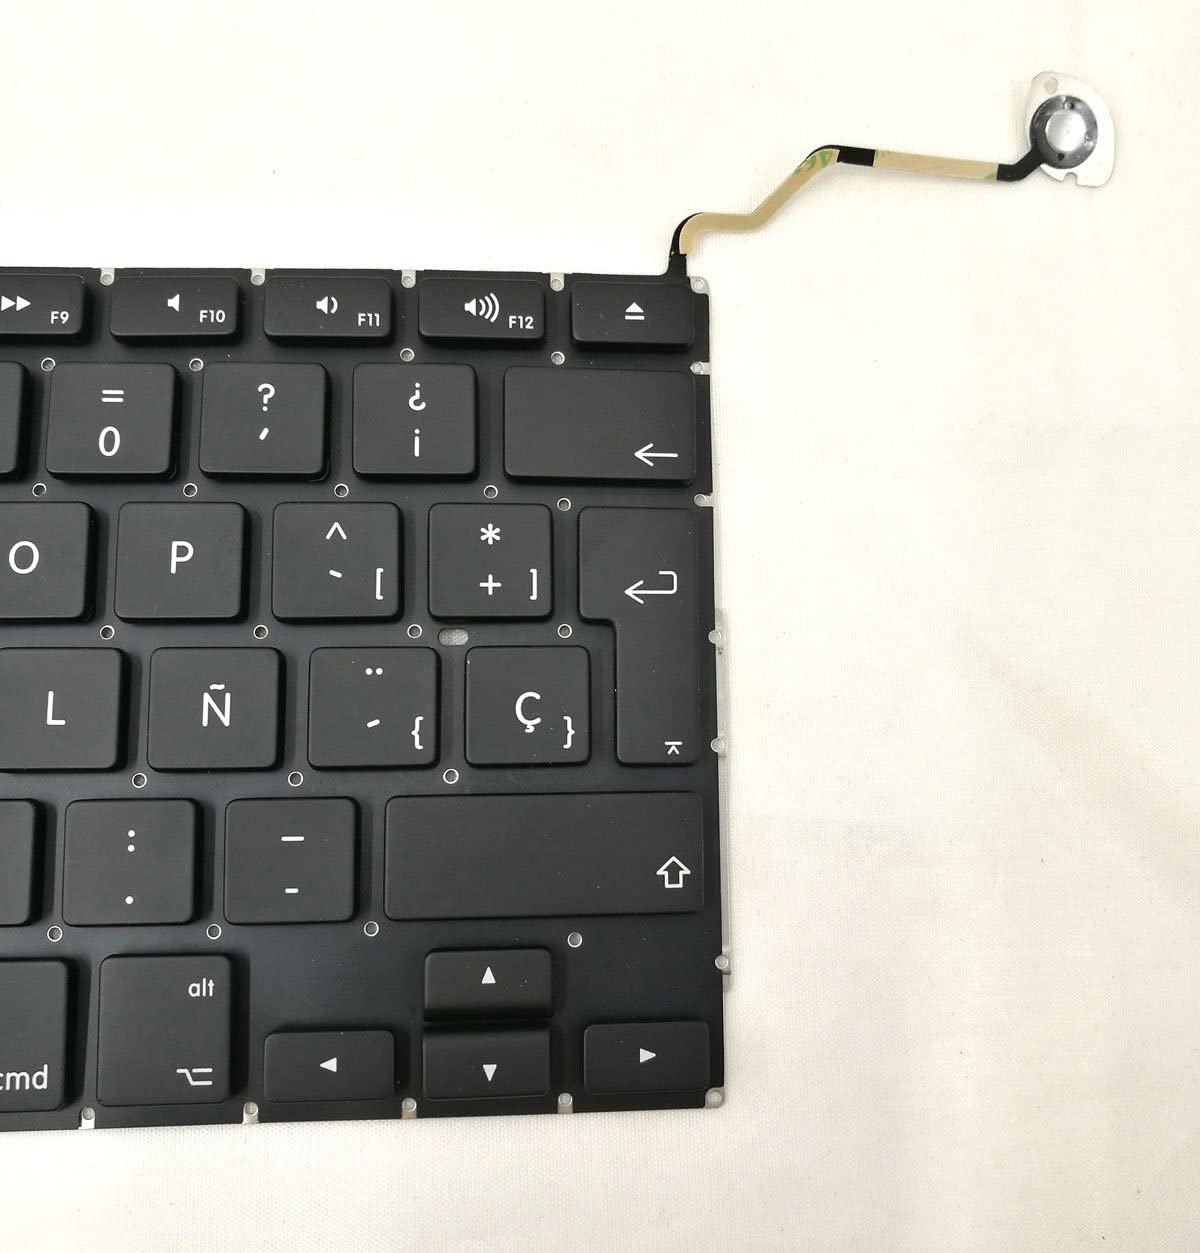 Ittecc Spanish Teclado Keyboard ESPA/ÑOL Replacment Fit for MacBook Pro Unibody 17 A1297 Year of 2009 2010 2011 2012